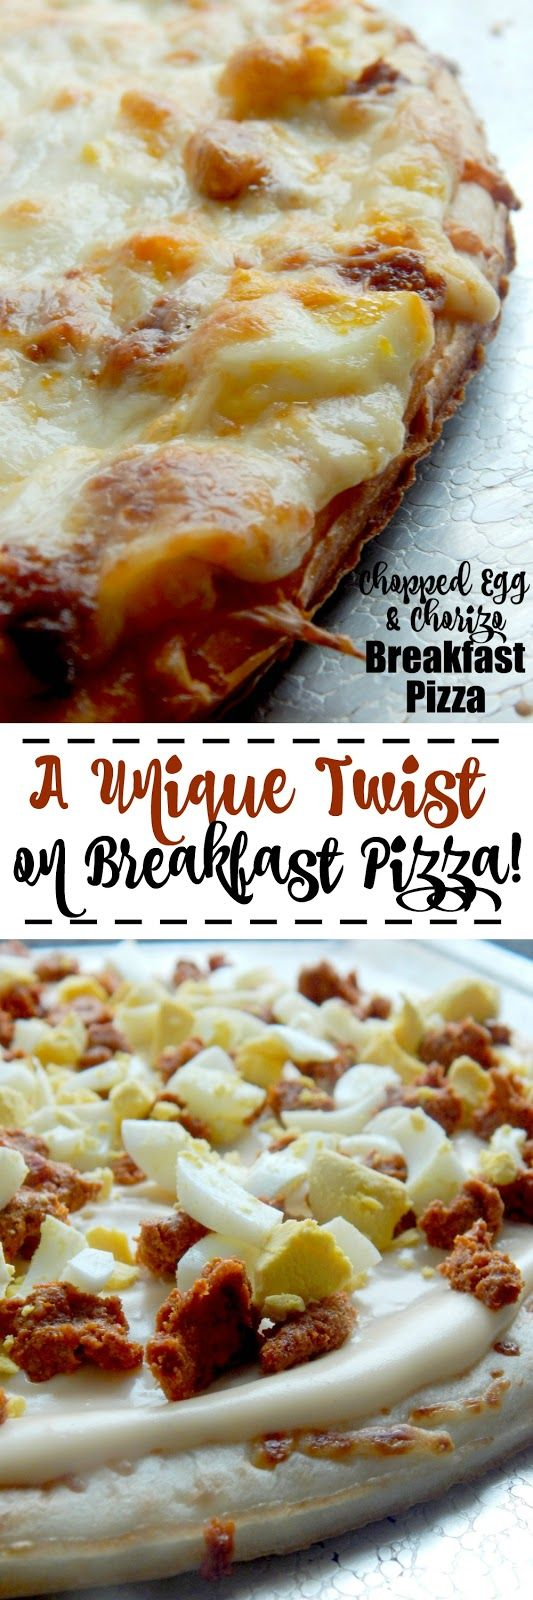 Chopped Egg & Chorizo Breakfast Pizza...a brillant way to use up hard boiled eggs! Fun, creative, tasty, who doesn't love pizza?